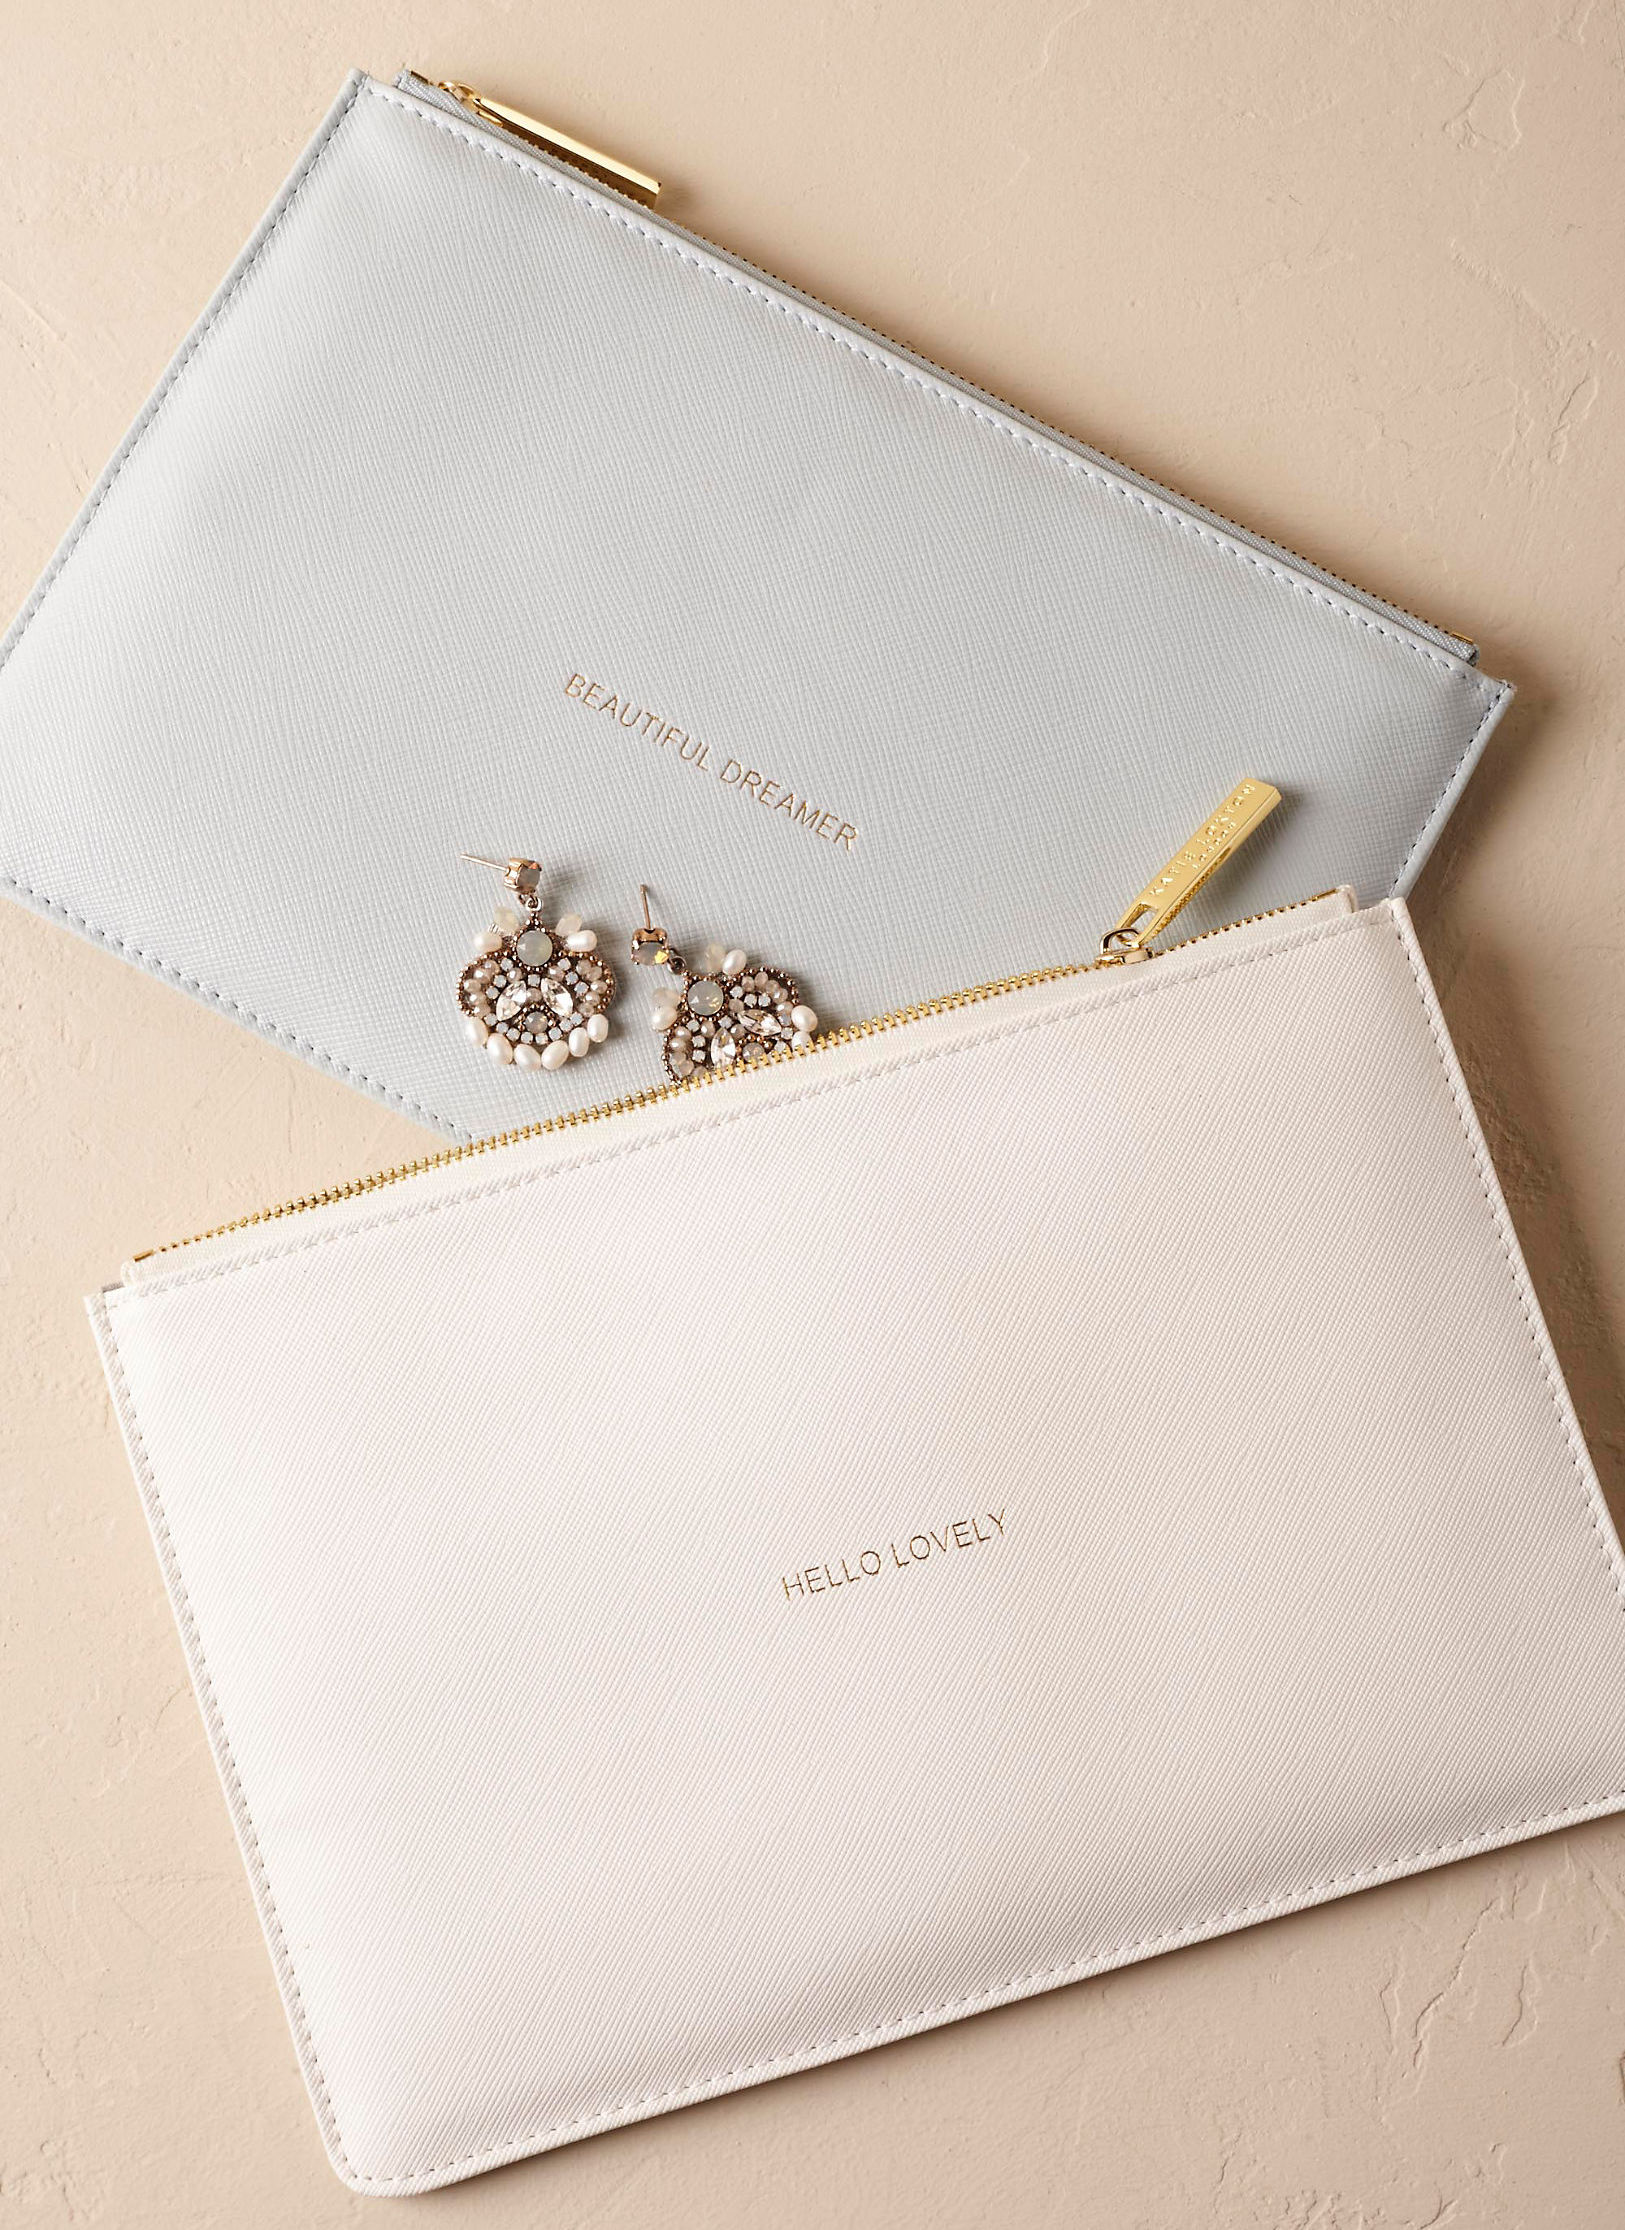 Tranquility pouch from BHLDN bridesmaid gift ideas